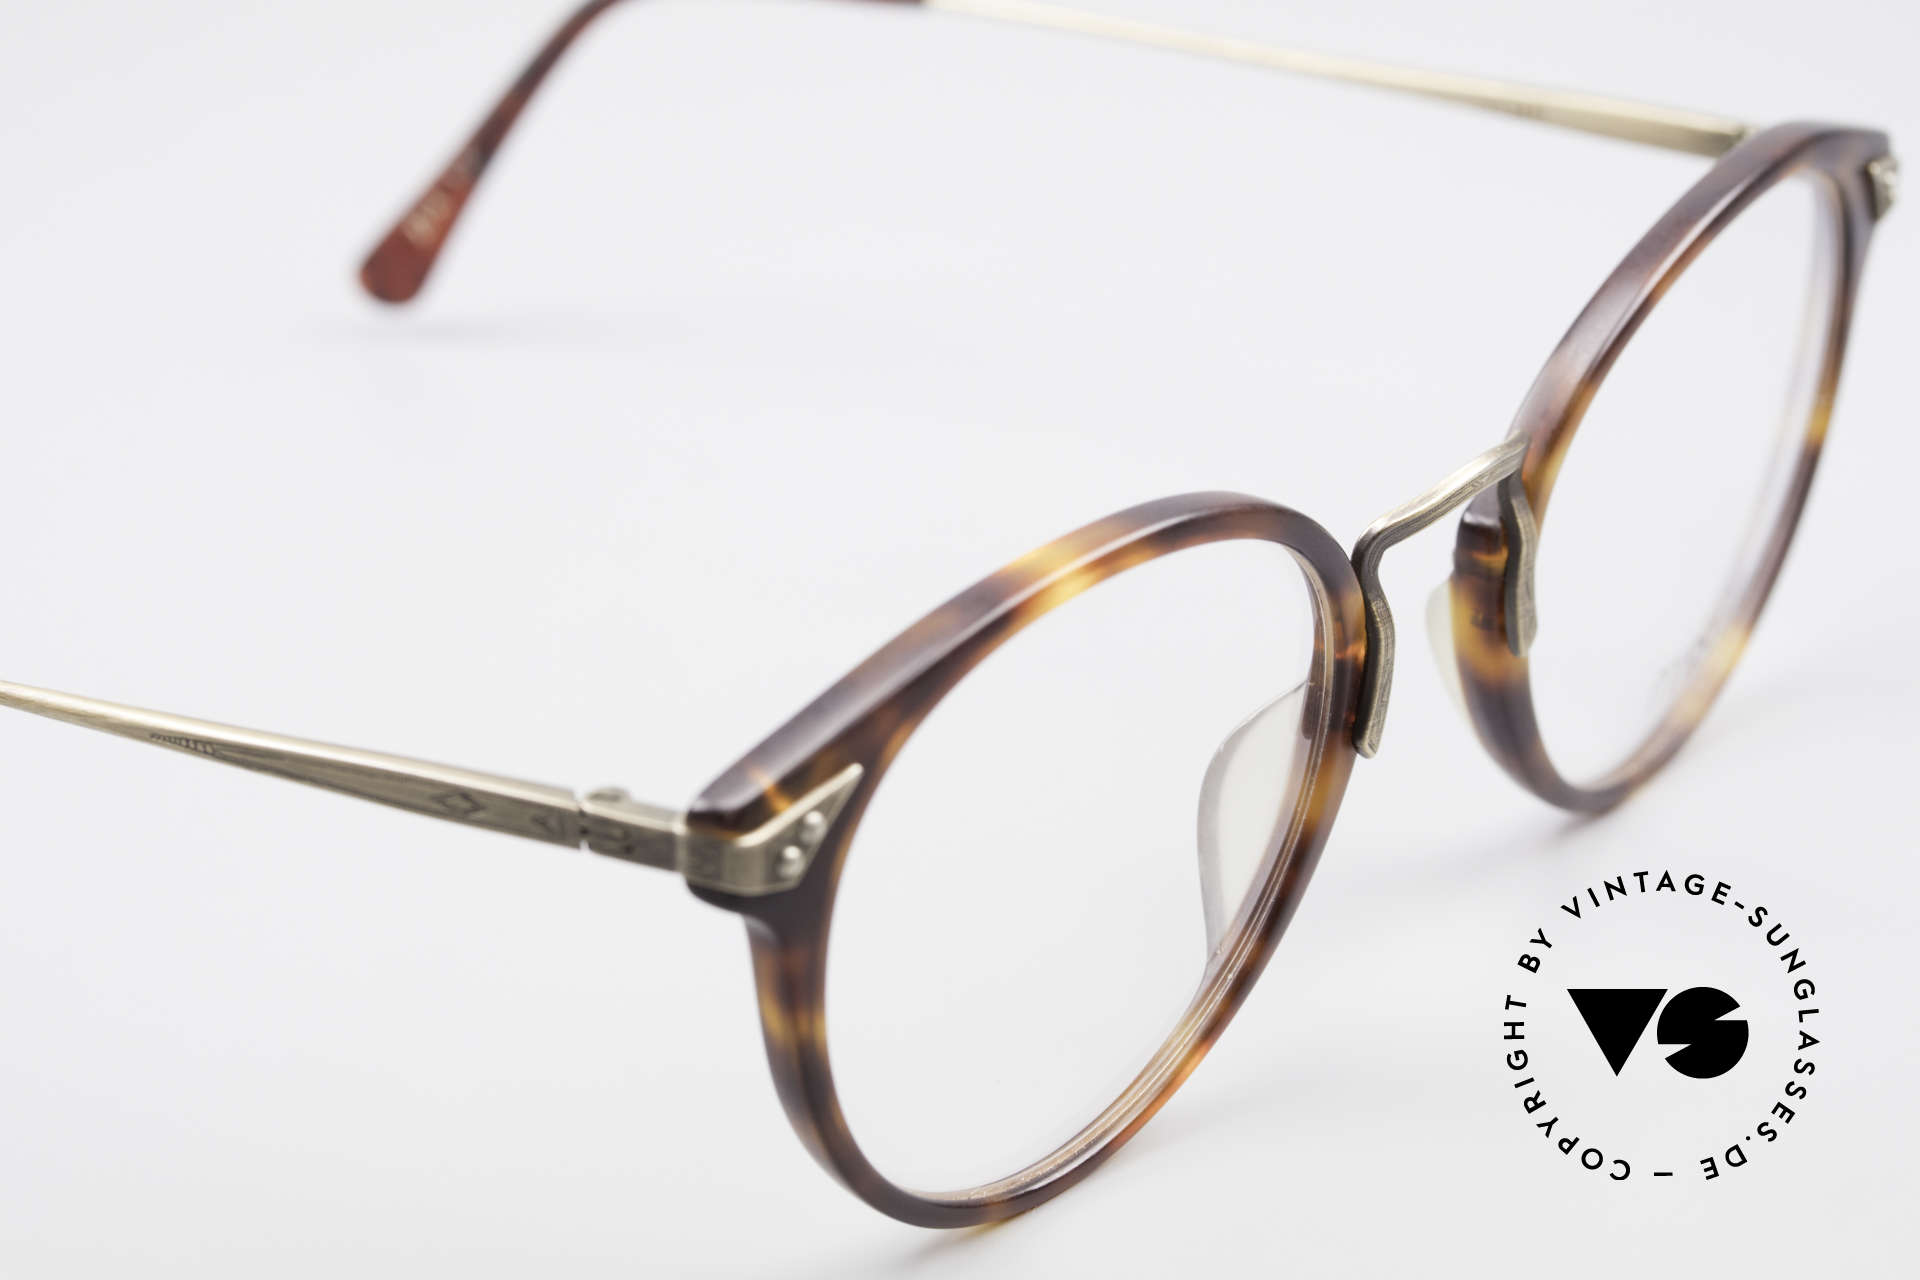 Matsuda 2805 Vintage Glasses Panto Style, unworn rarity (like all our vintage Matsuda specs), Made for Men and Women